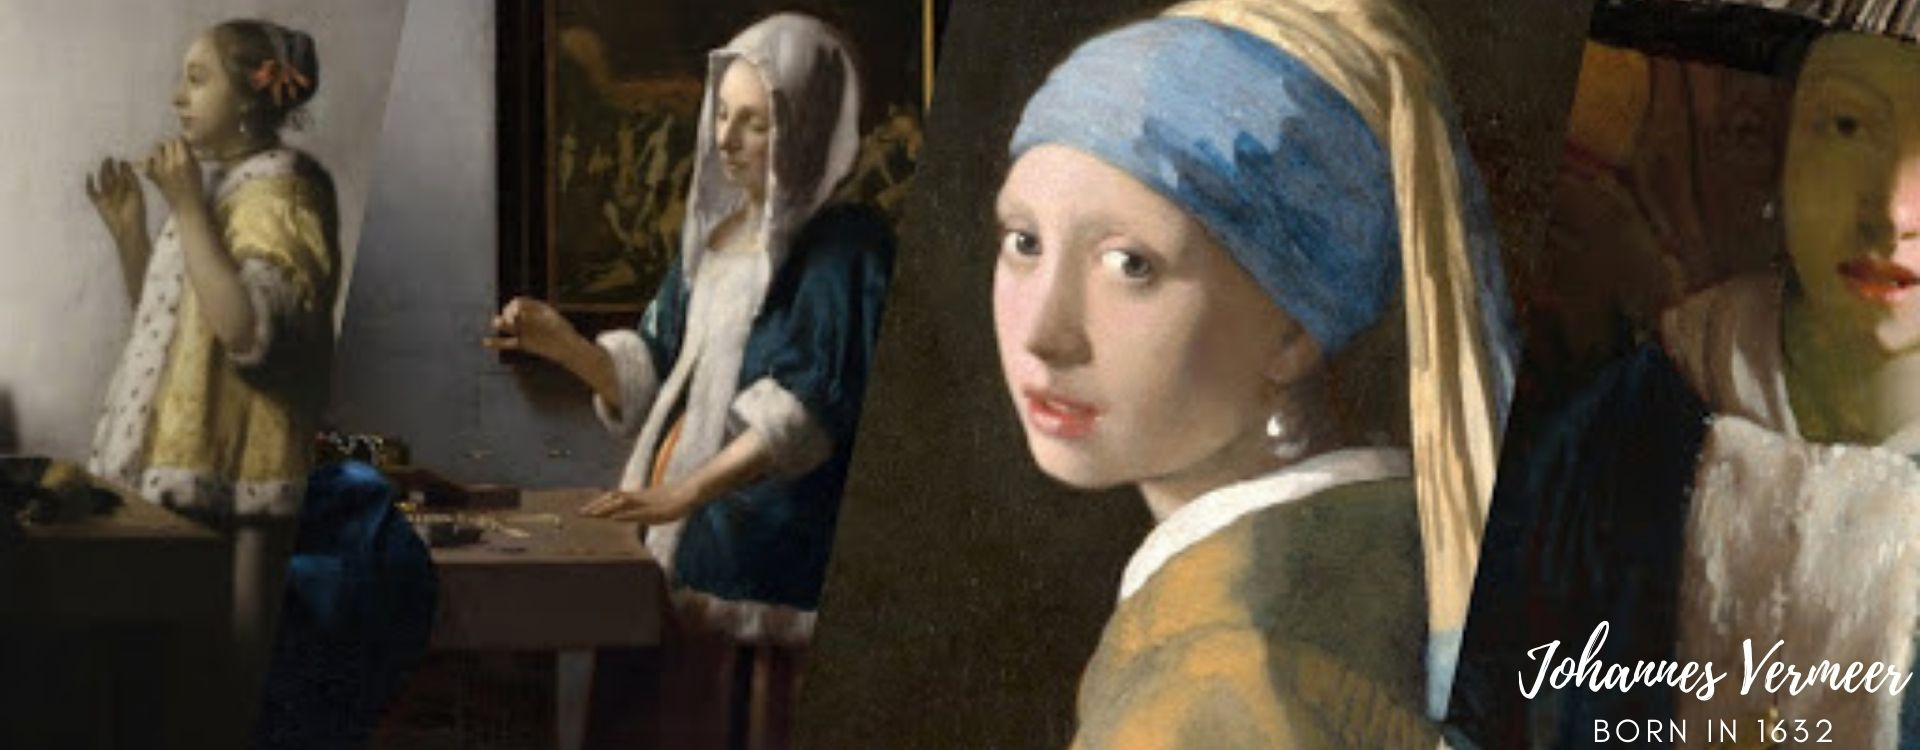 custom Johannes Vermeer souvenirs wholesale manufacturer and supplier in China